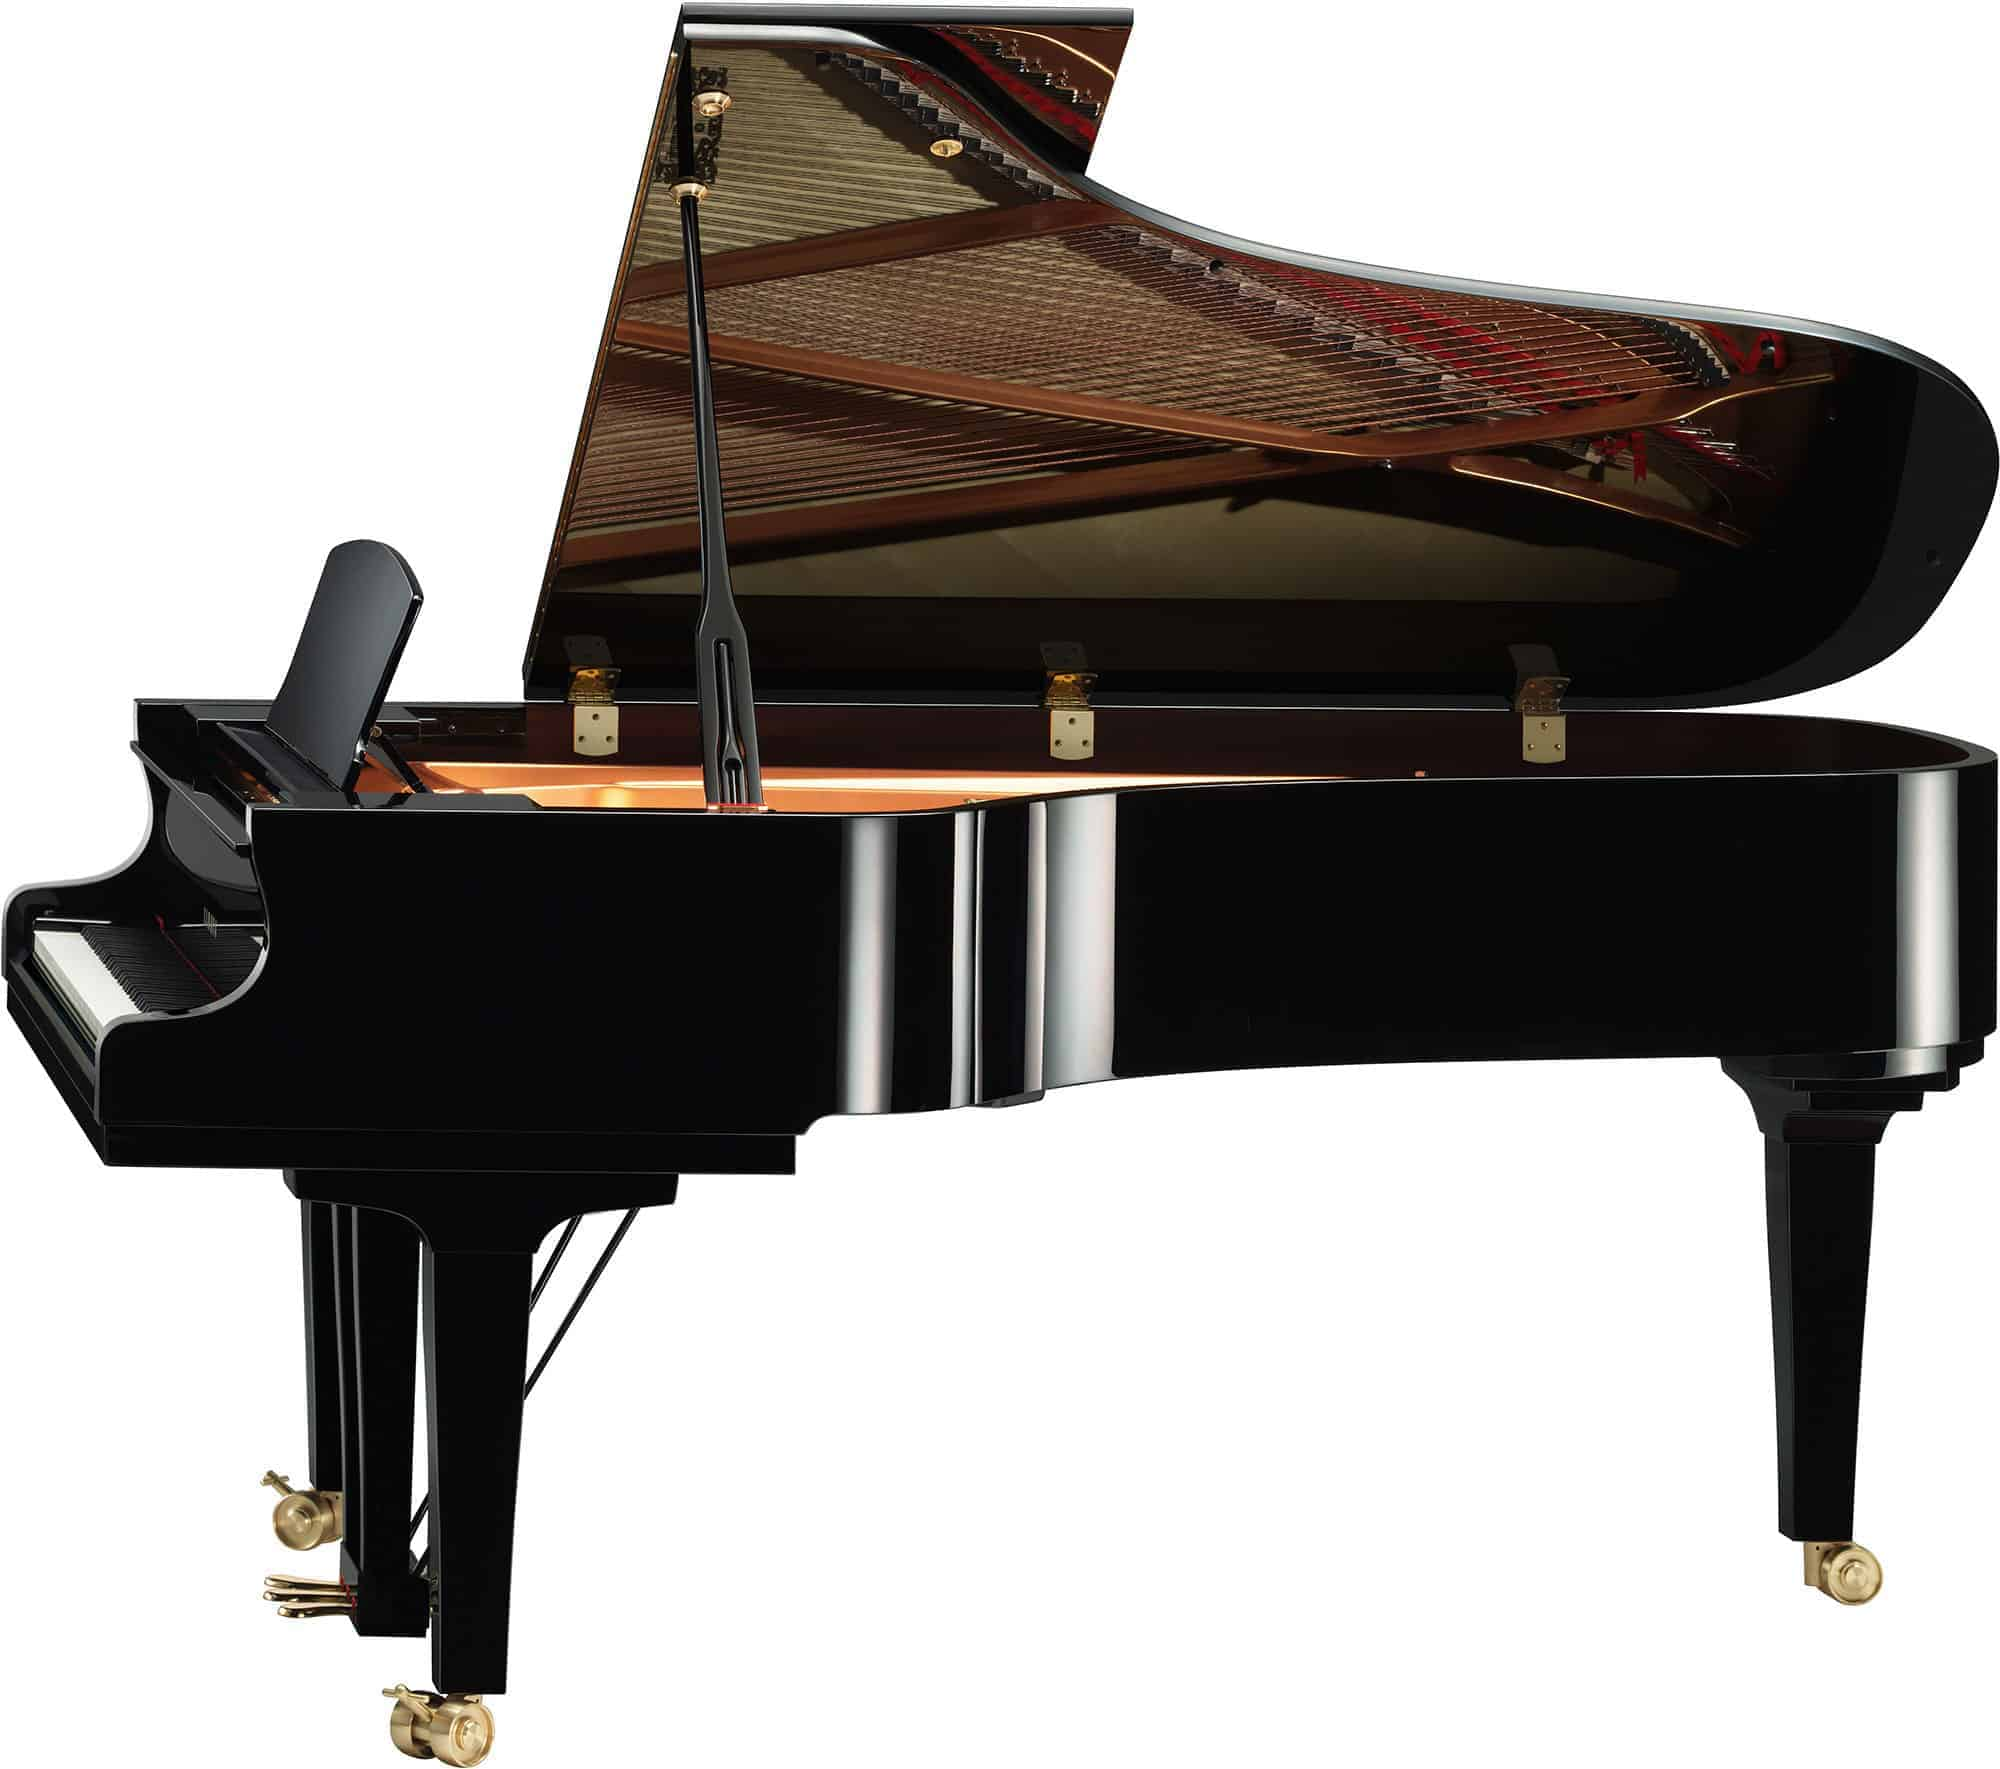 Yamaha s7x grand piano play it today at piano gallery of for Yamaha grand piano sizes